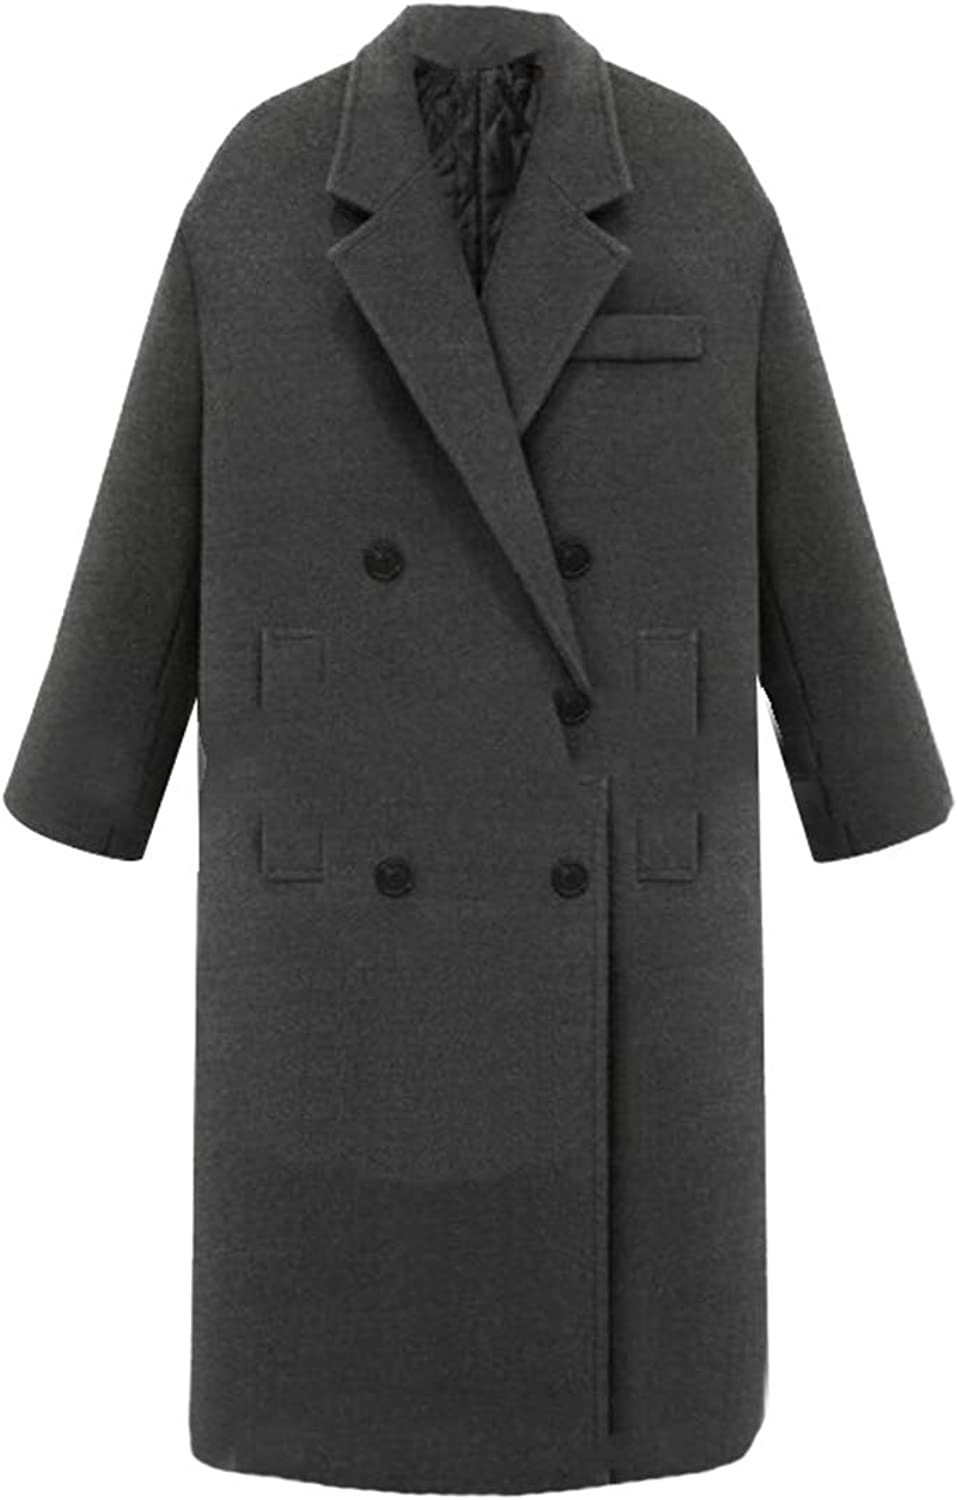 GAGA Women's Fashion Wool Trench Coat Winter DoubleBreasted Jacket